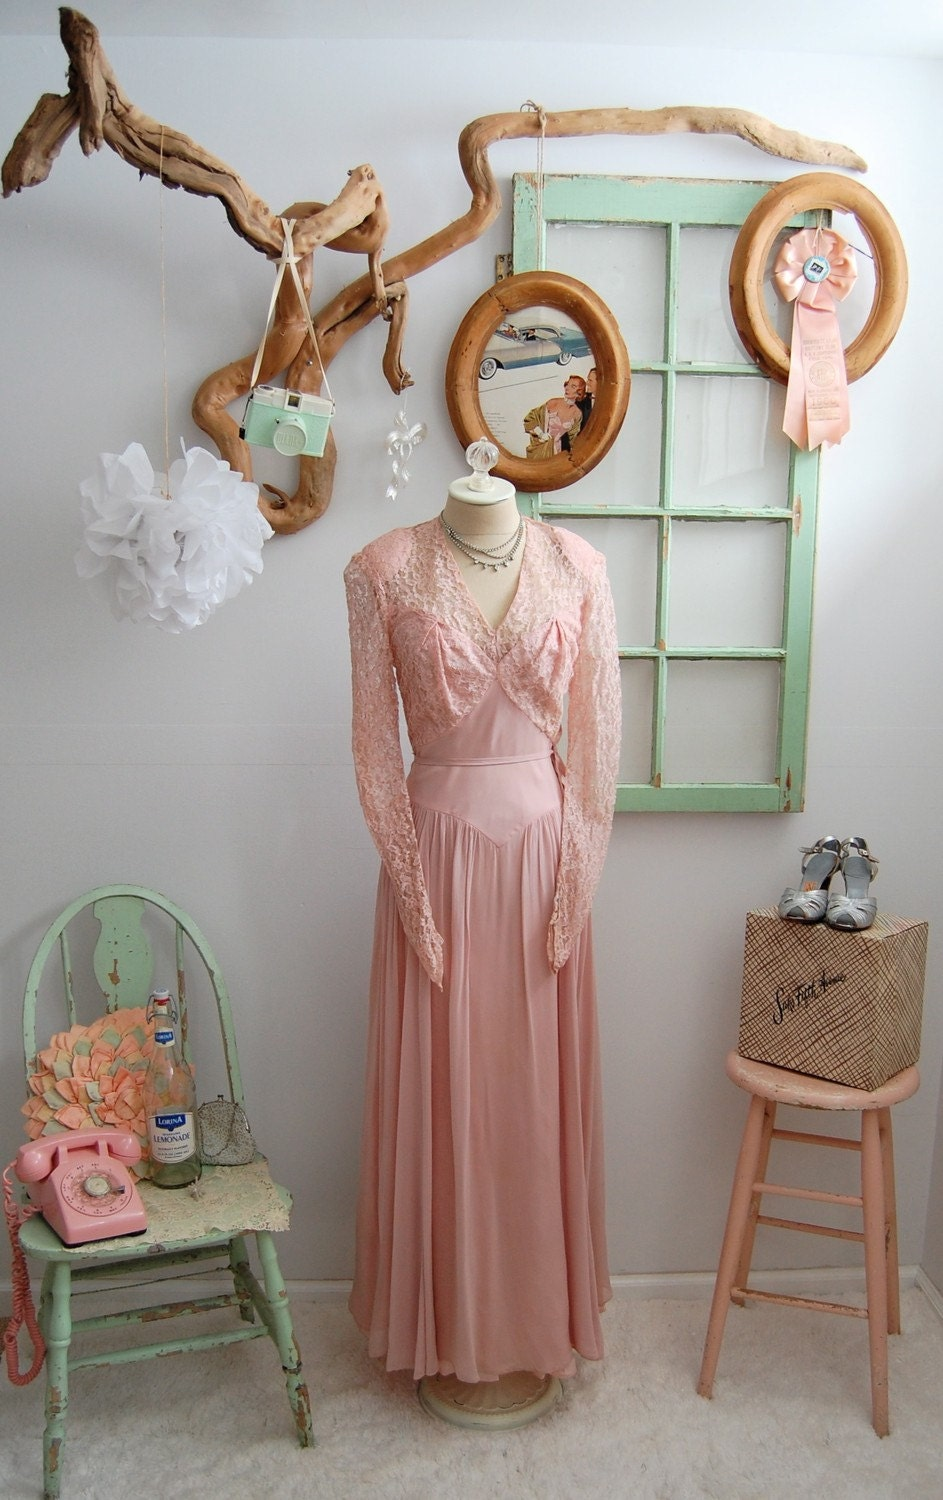 The Jolene- Vintage 1930s 1940s Pale Blush Pink Lace Sweetheart Silk Chiffon Evening Gown Dress Size Small Medium